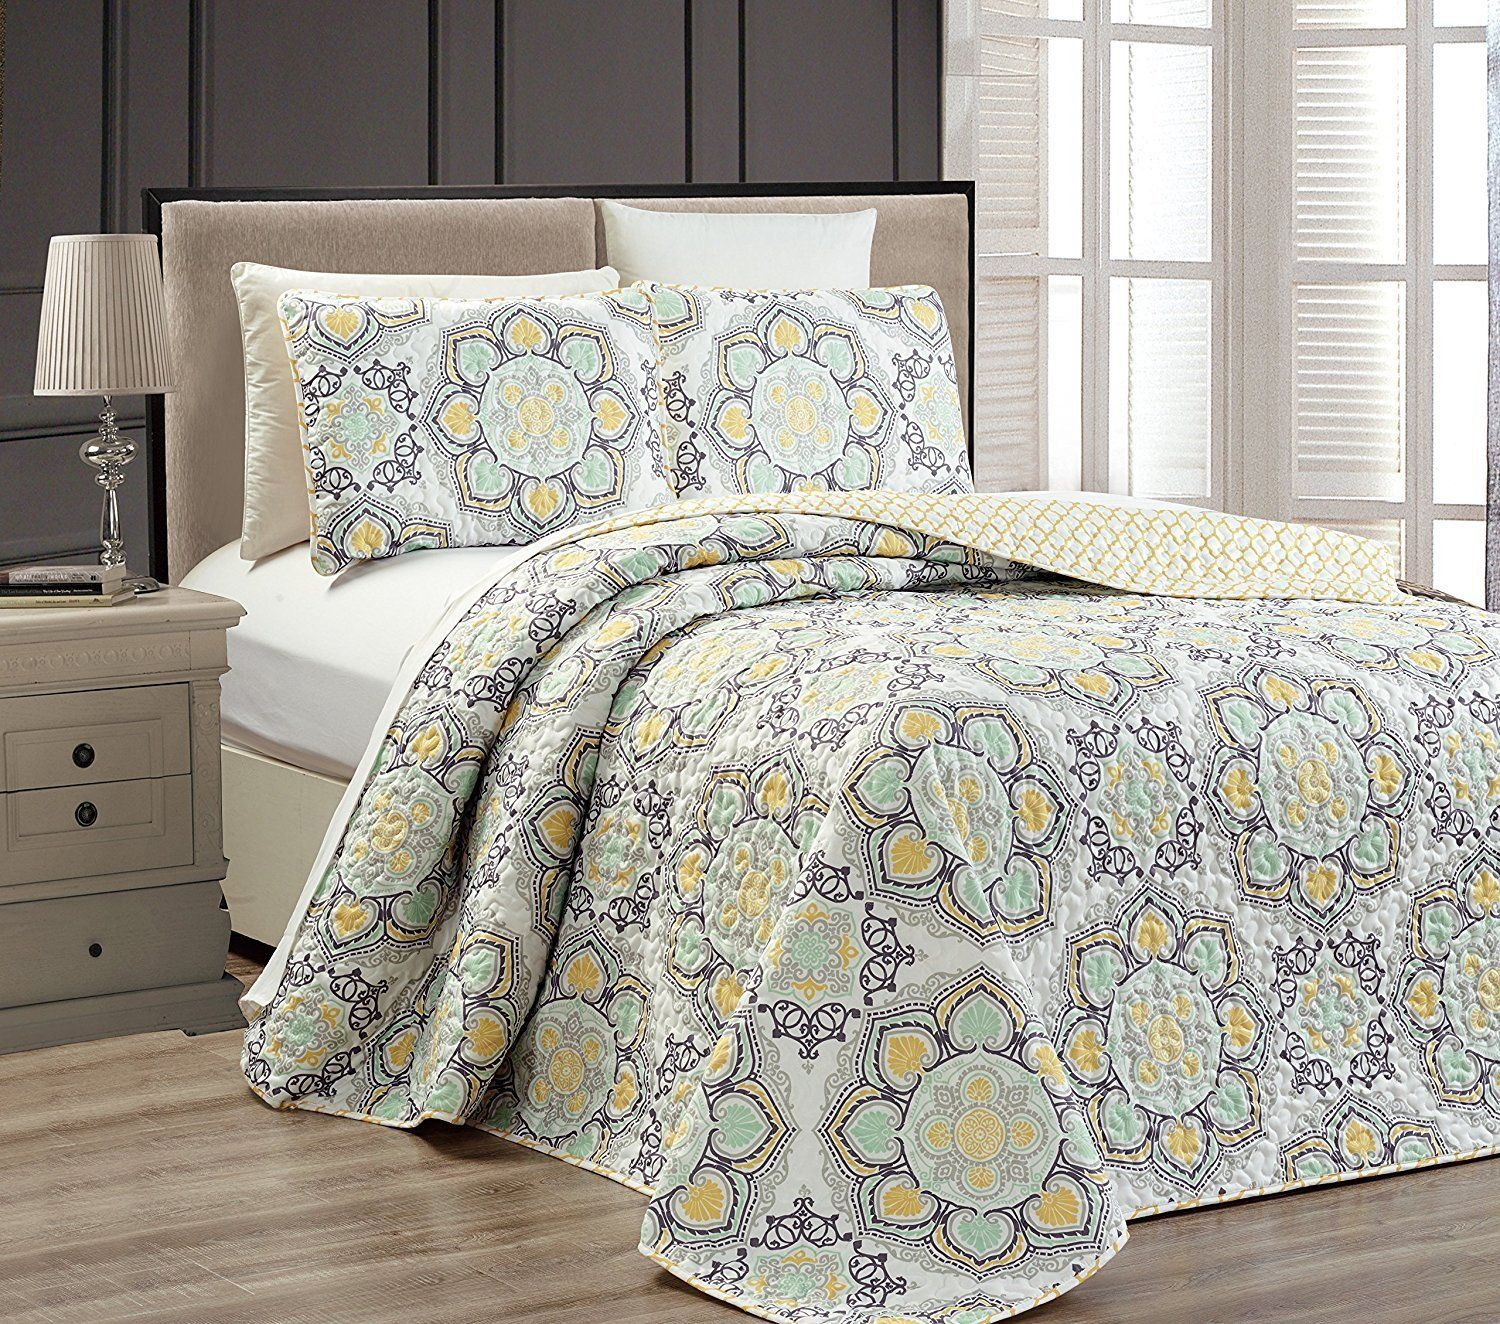 Mk Collection 3pc Queen Oversize Reversible Quilted Bedspread Set Floral Yellow White Gray Light Green New Yo Bed Spreads Bedspread Set Queen Size Bedspread